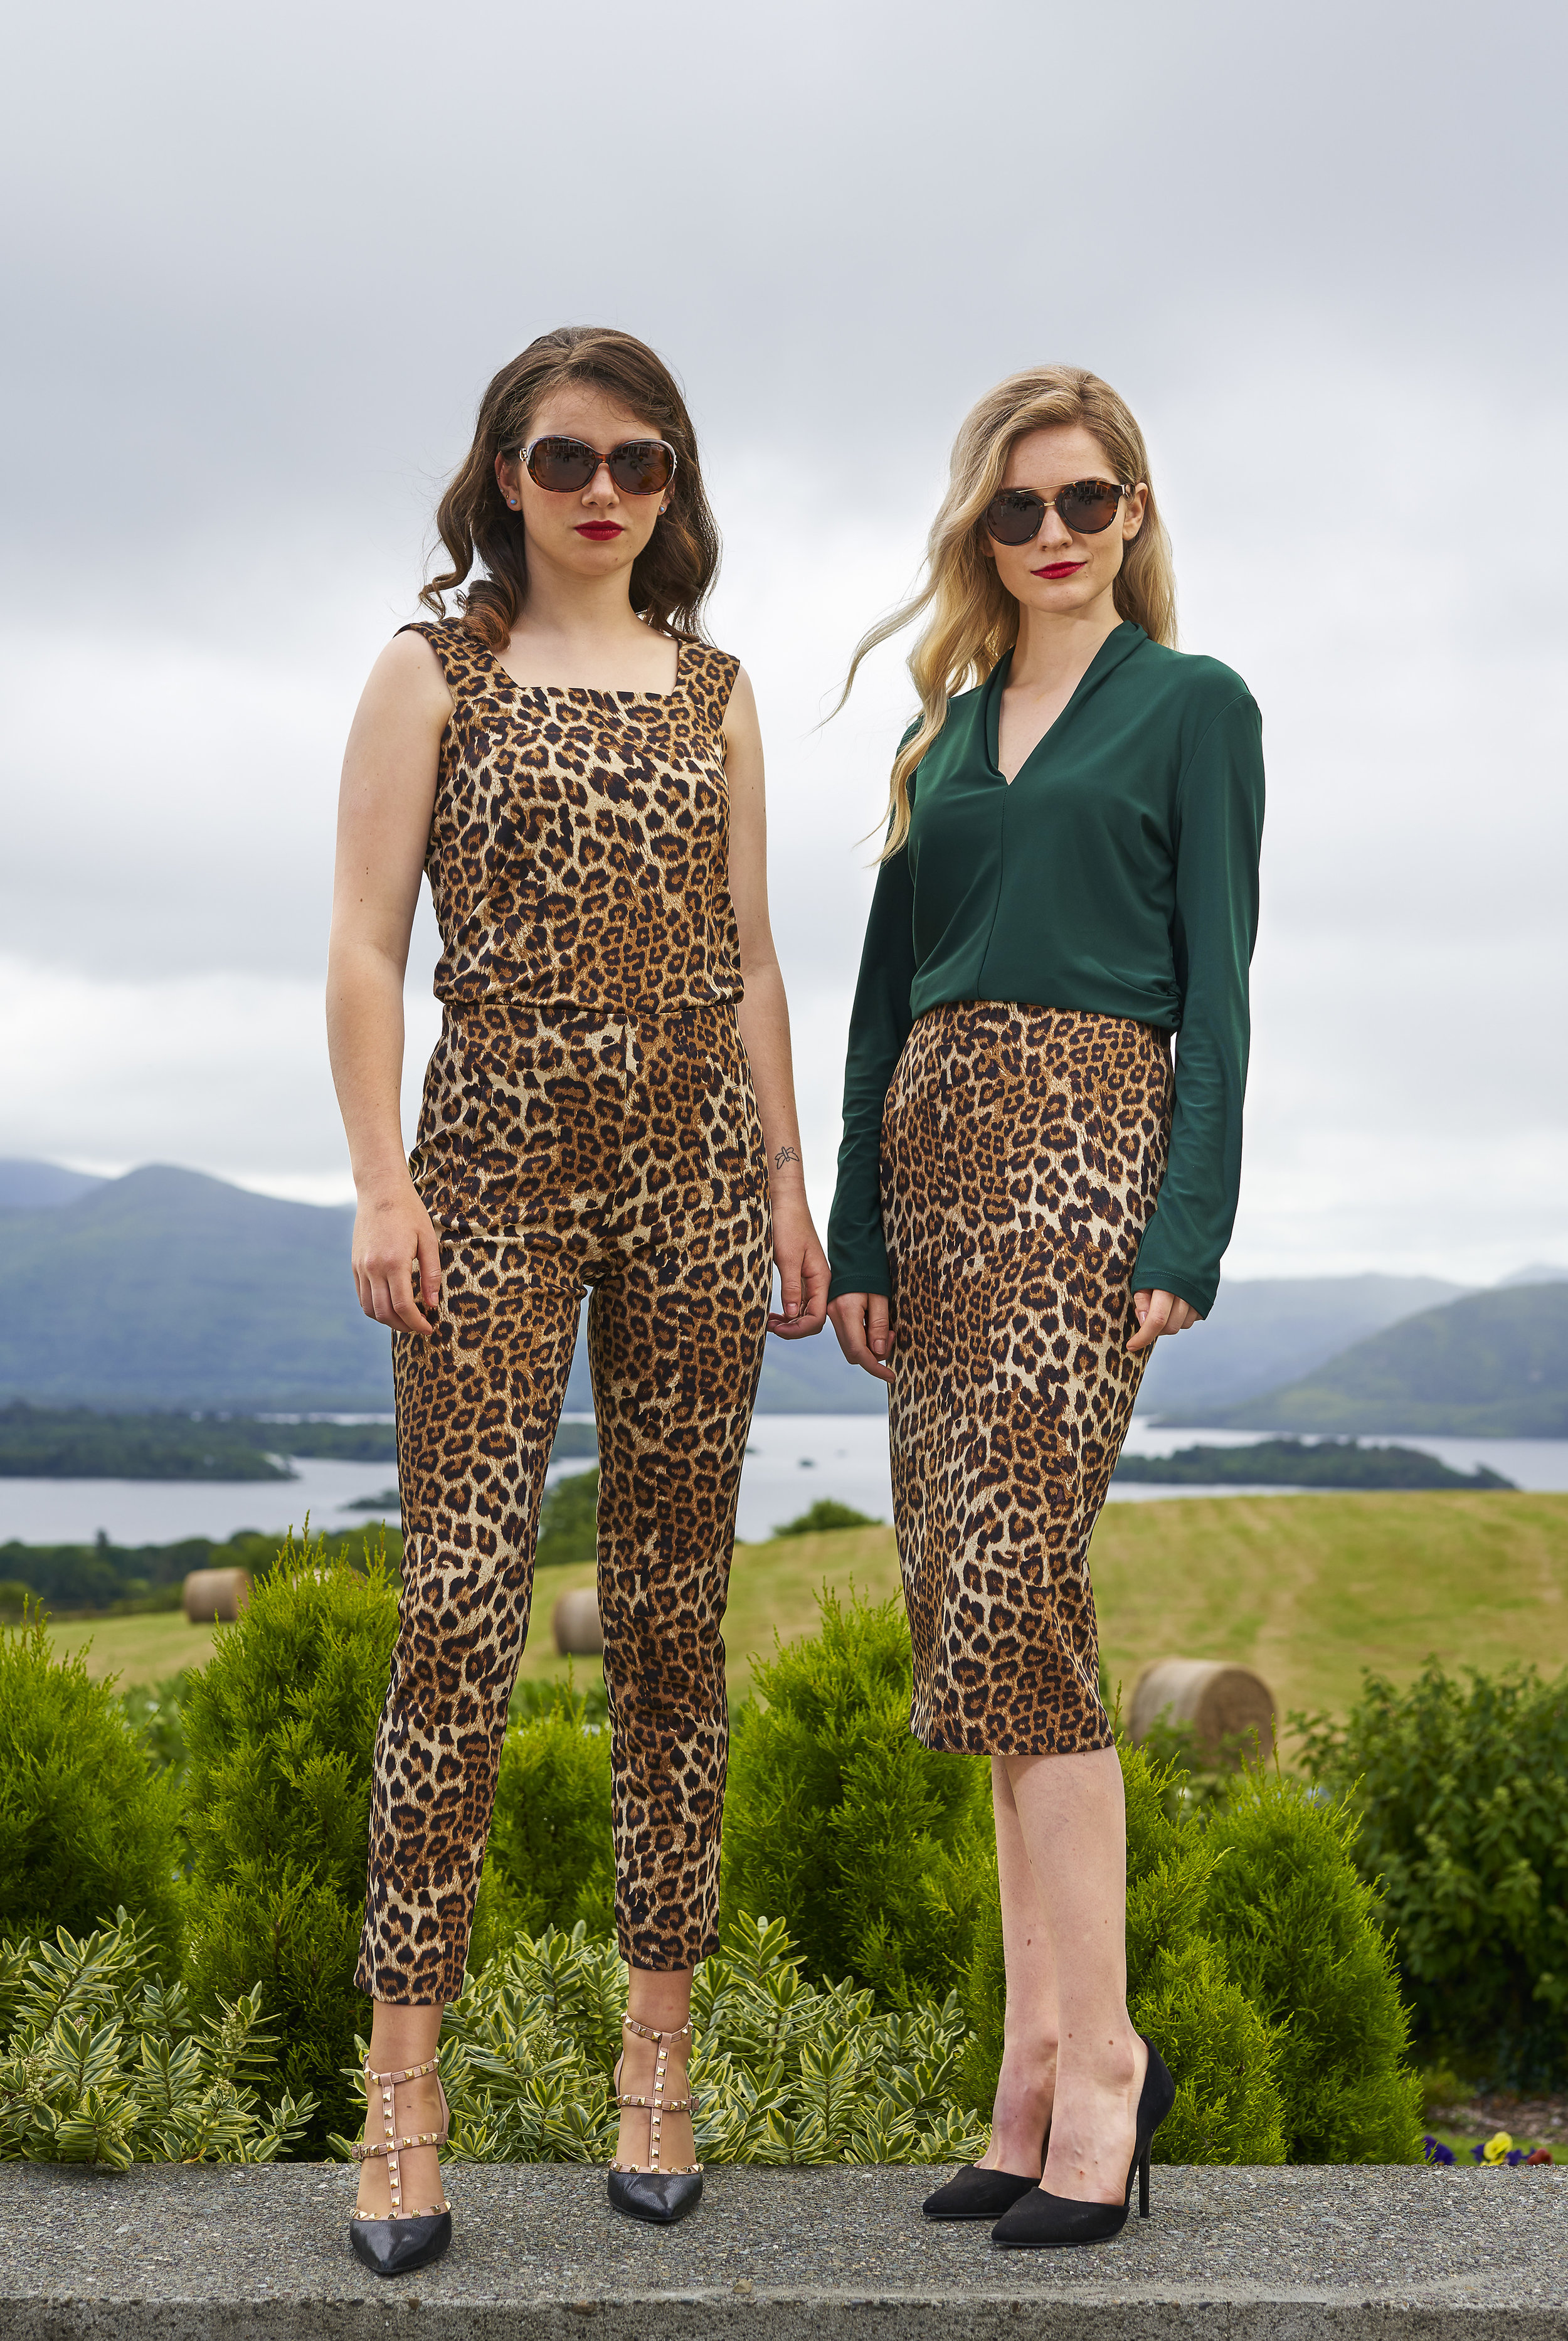 Animal prints are big news again this Fall. Sophie and Fiona model new in looks at Hannons of Castleisland styled by Orla Diffily. Photo credit: Barry Murphy